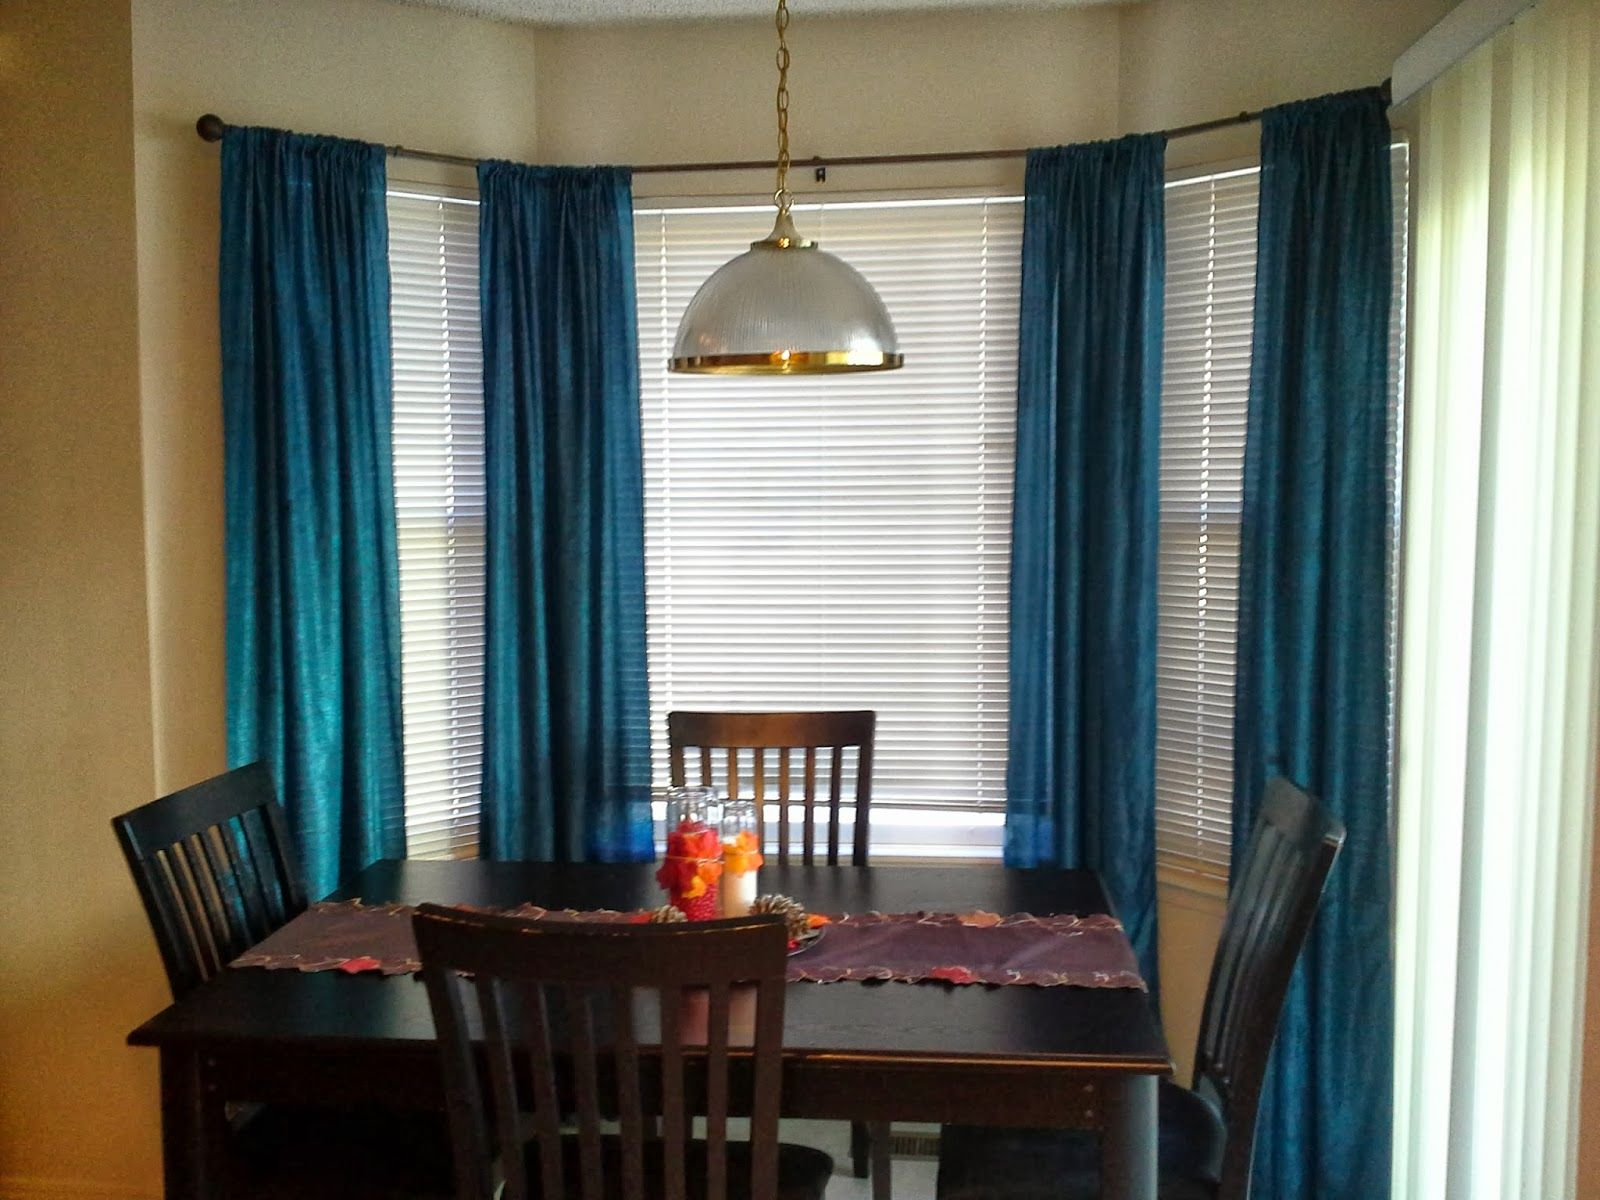 Cool Pendant Lamp On The Rectangular Table And Adorable Kitchen Curtain Bay Window Ideas Curtains